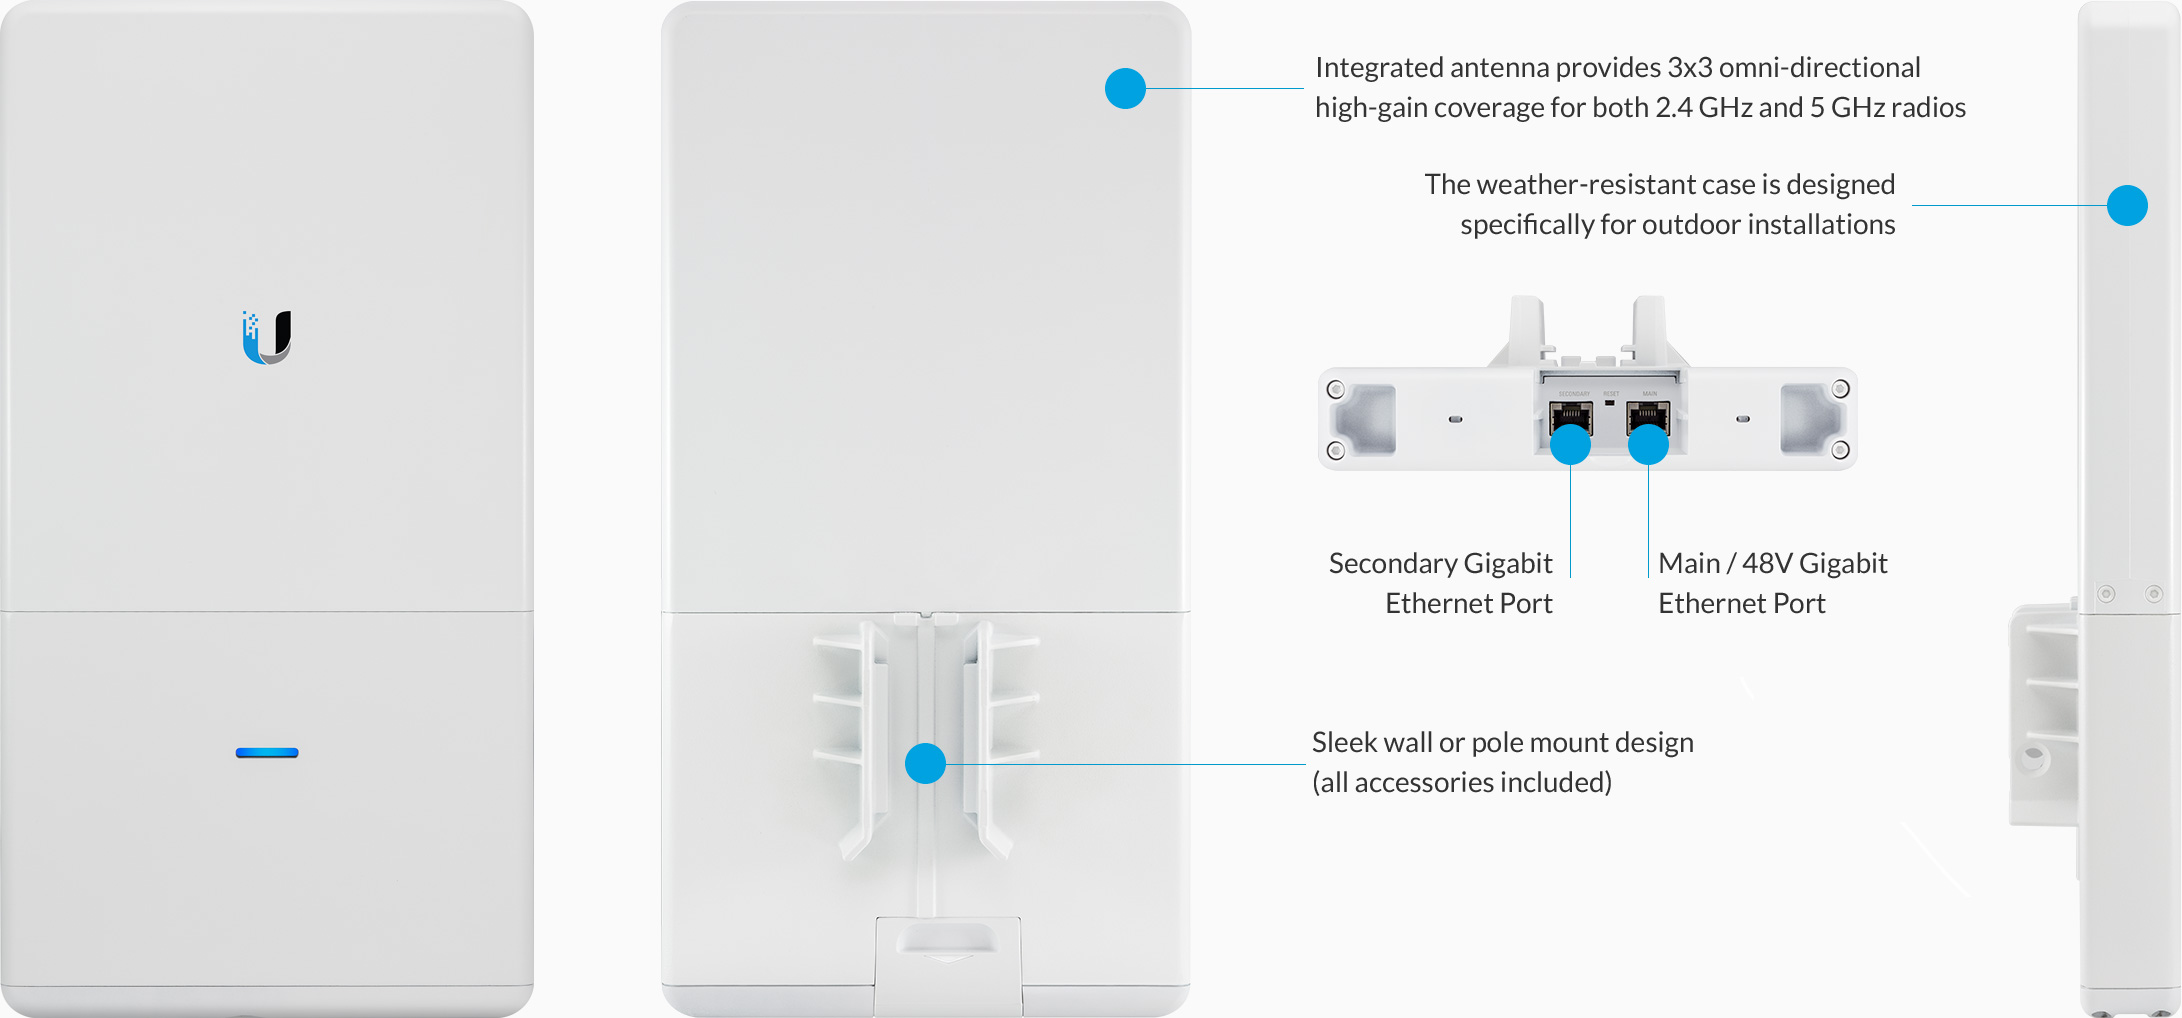 The UniFi AP AC Outdoor can be mounted seamlessly on any wall or pole mounting kits included The LED indicator simplifies deployment and configuration